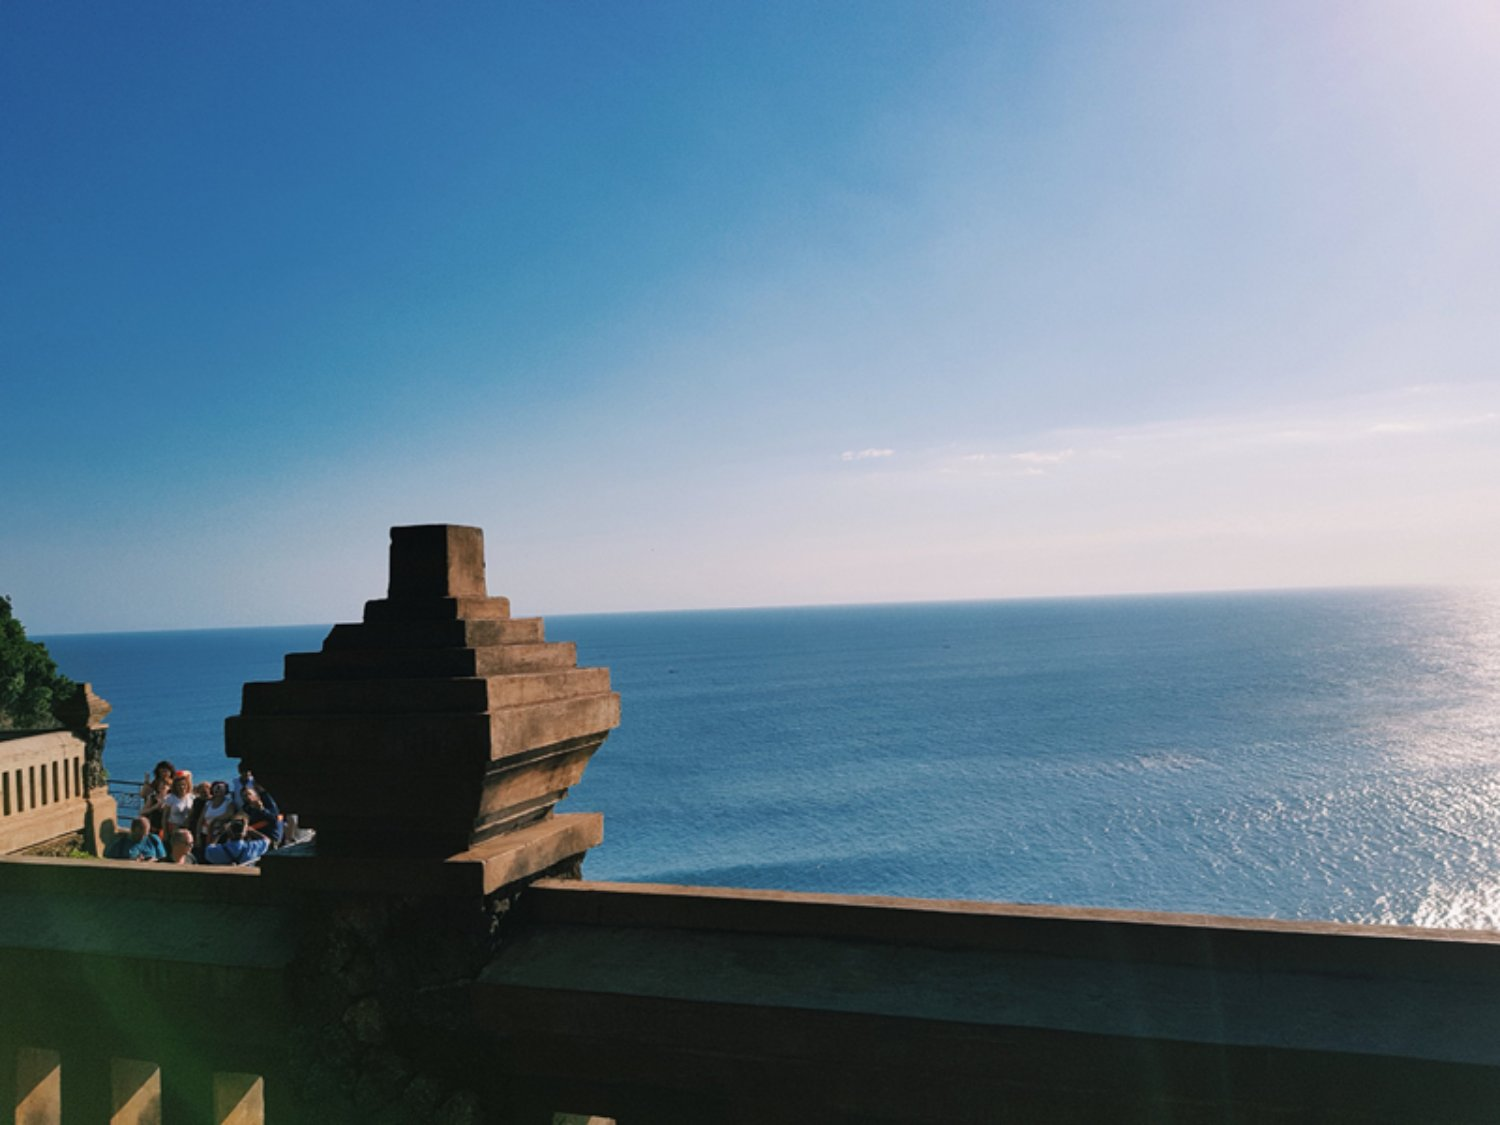 Accessibility in Uluwatu Temple for Wheelchair Users